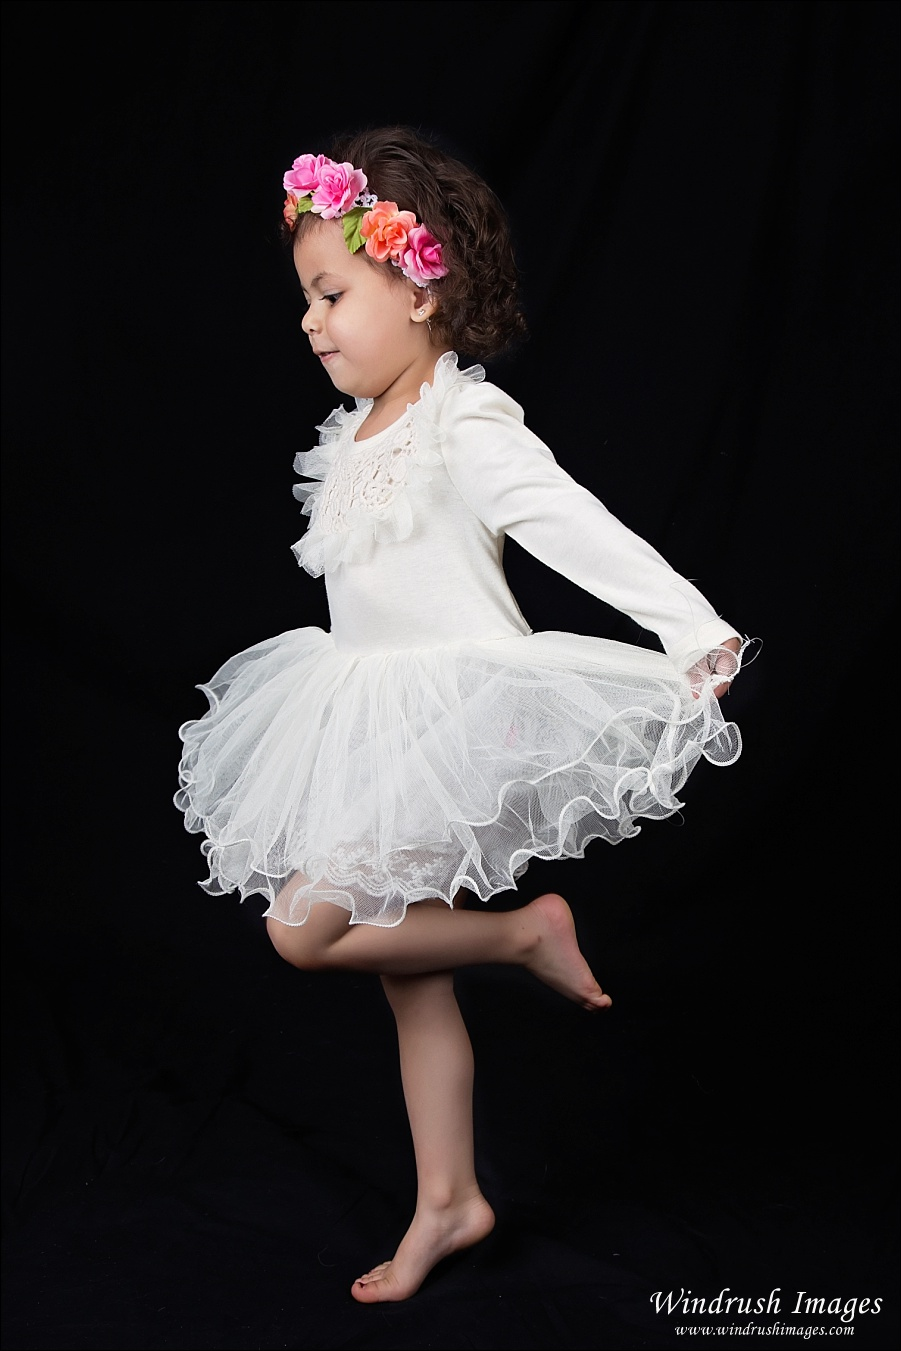 Calgary kids photographer of girl dancing joyfully wearing white dress and floral headband